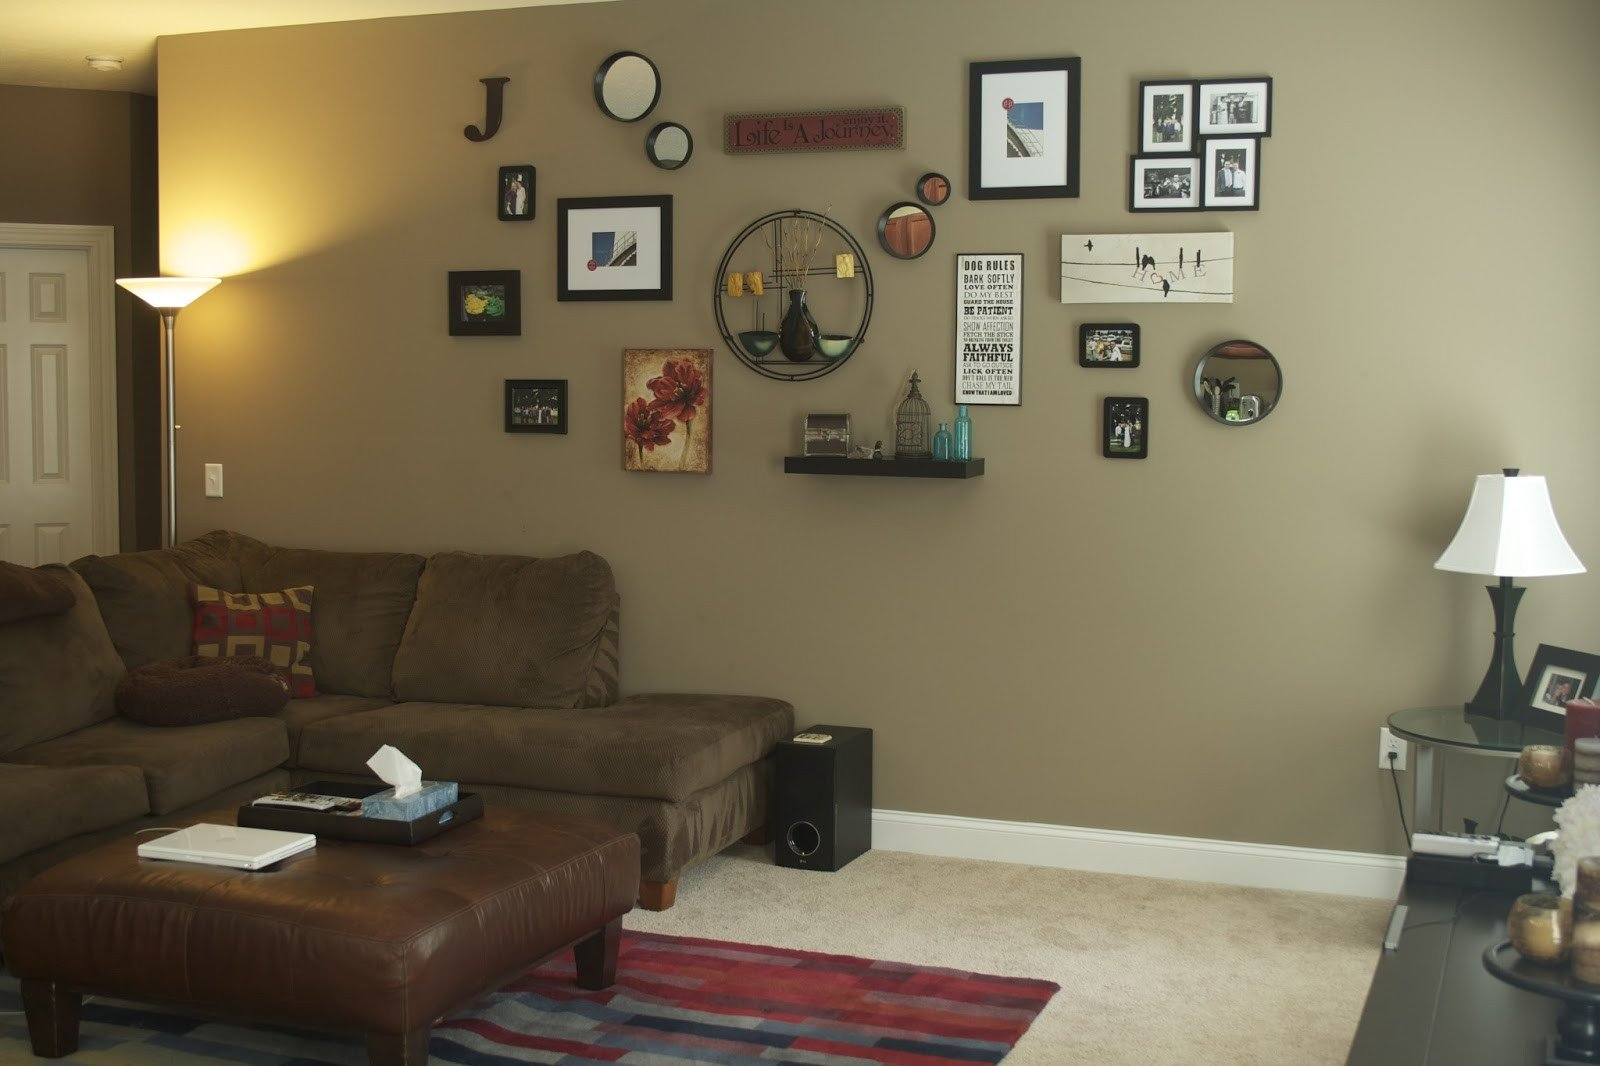 Decor for Living Room Wall Inspirational oregon Transplant Home Decor Living Room Wall Collage